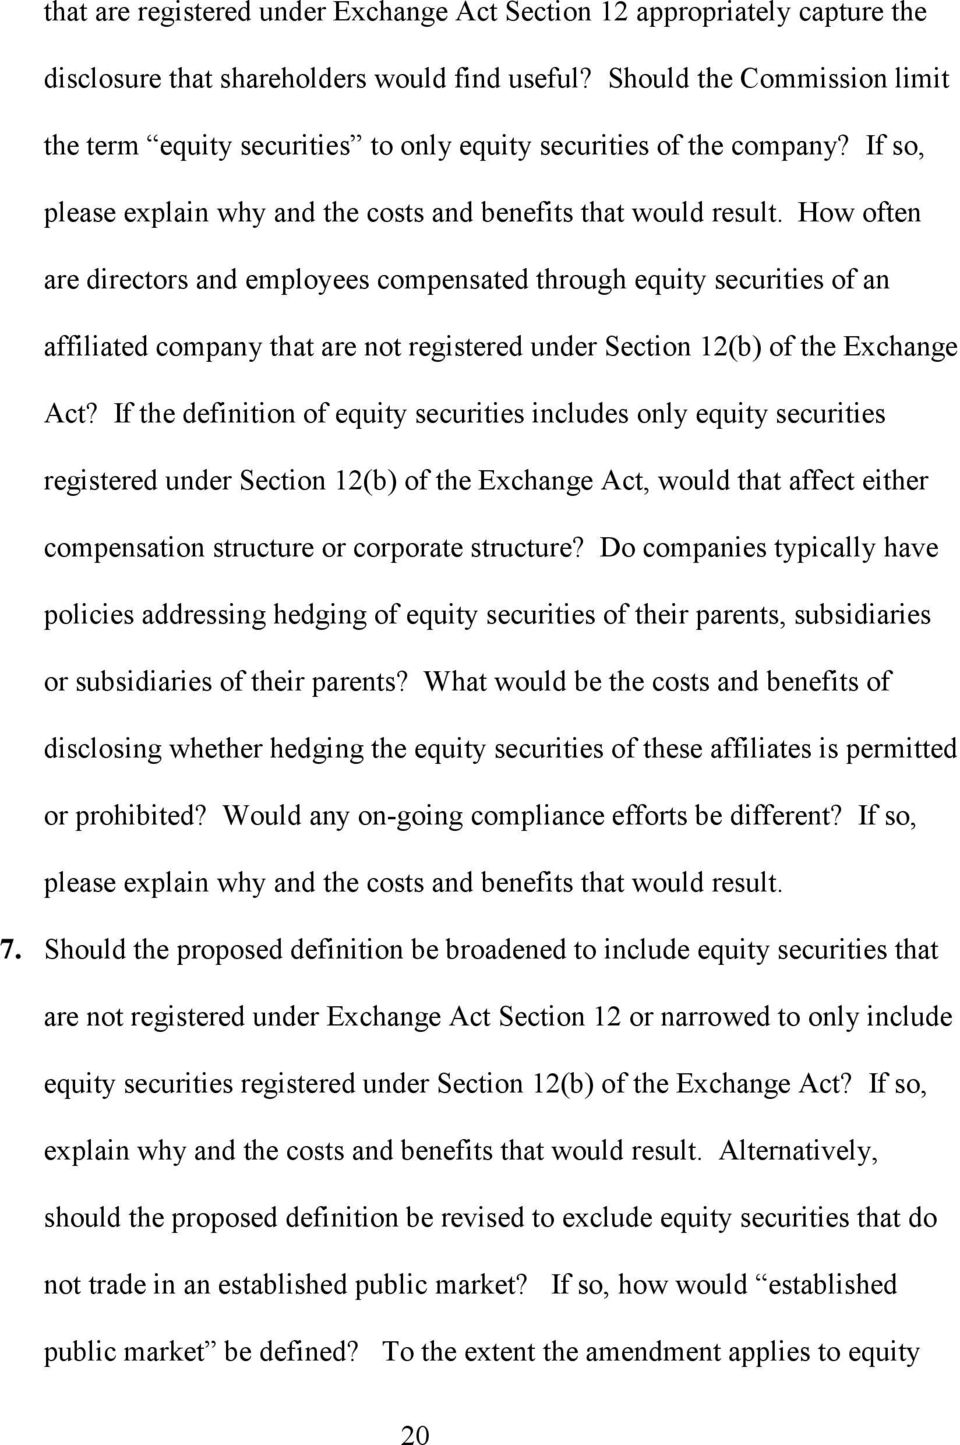 How often are directors and employees compensated through equity securities of an affiliated company that are not registered under Section 12(b) of the Exchange Act?